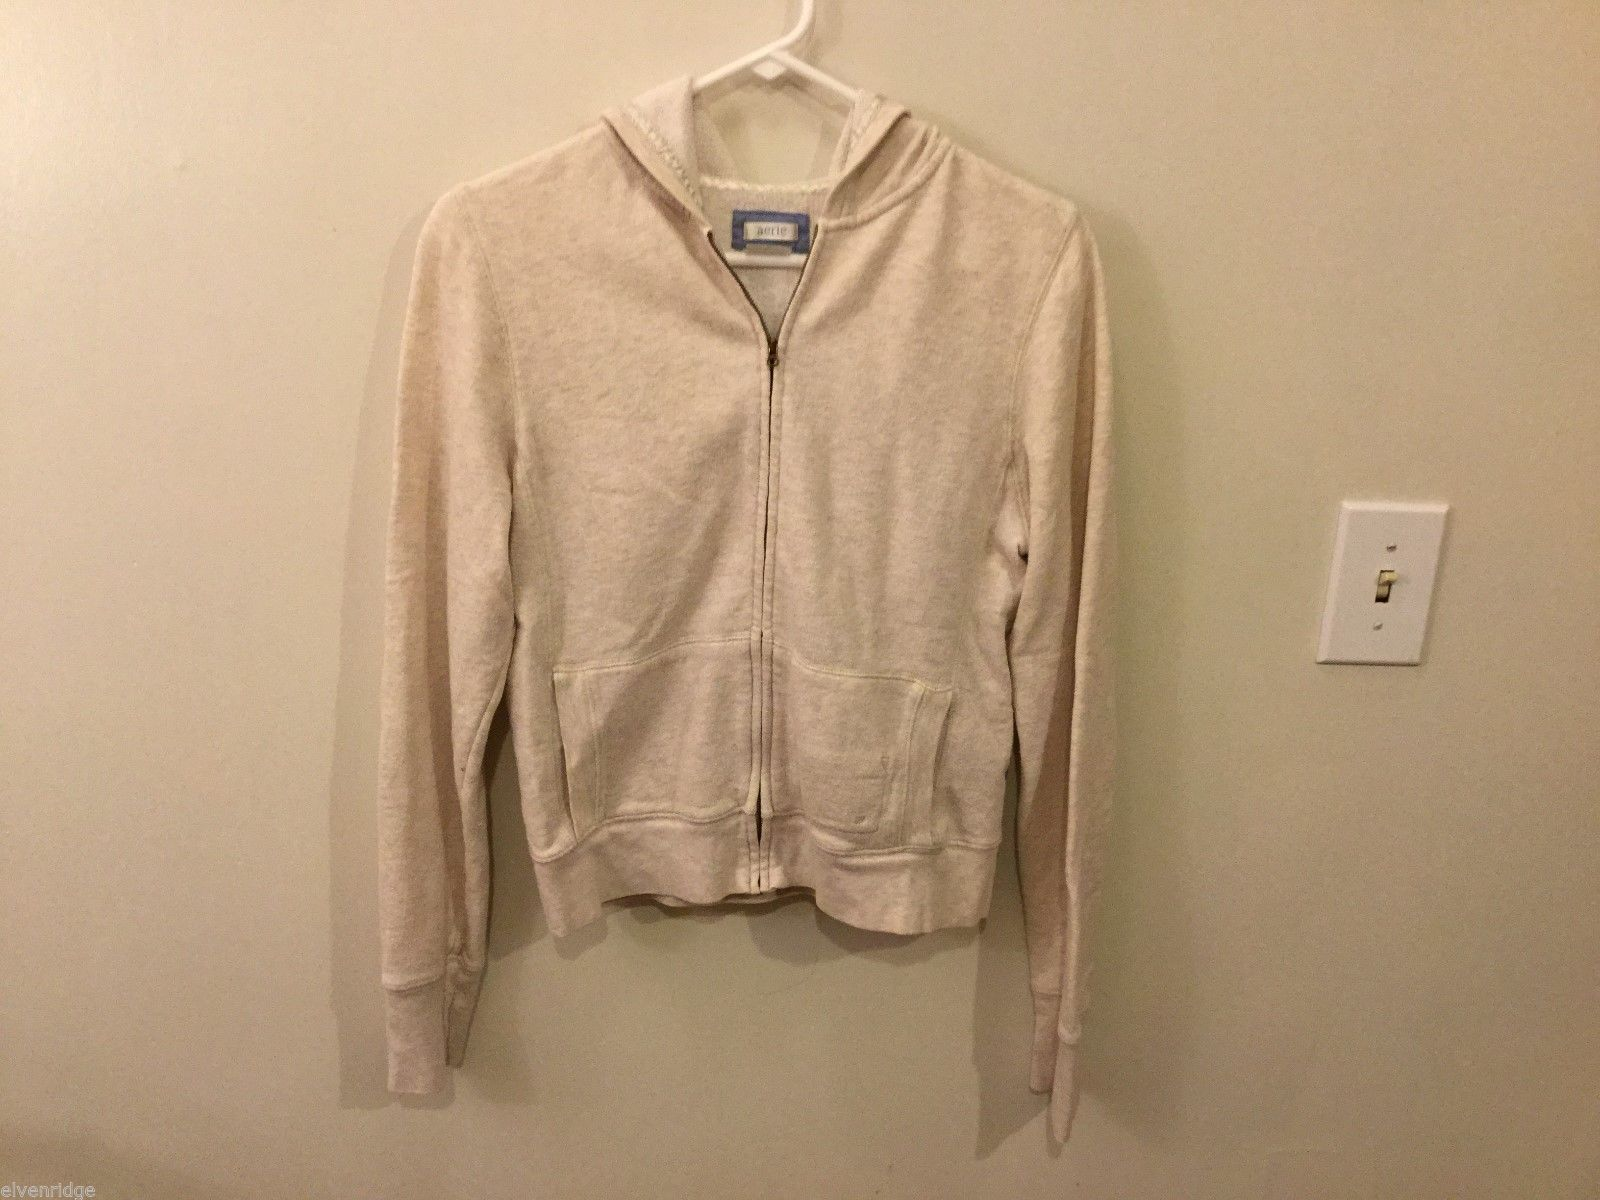 Womens Aerie Cream colored Zip-up Sweatshirt, Size Large